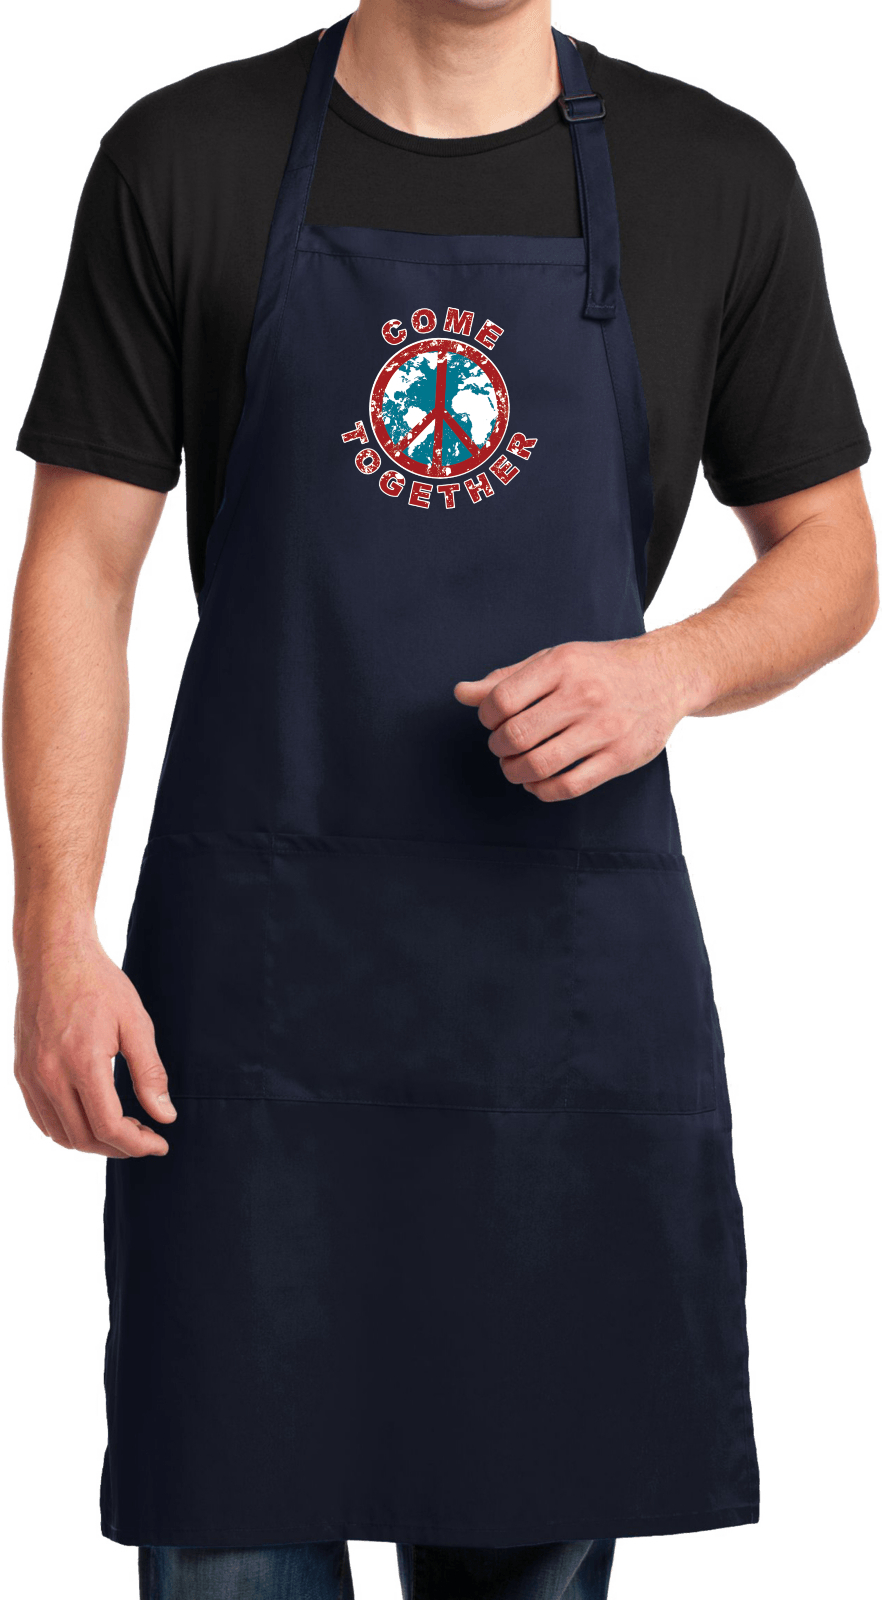 Mens Peace Apron Come Together Full Length Apron With